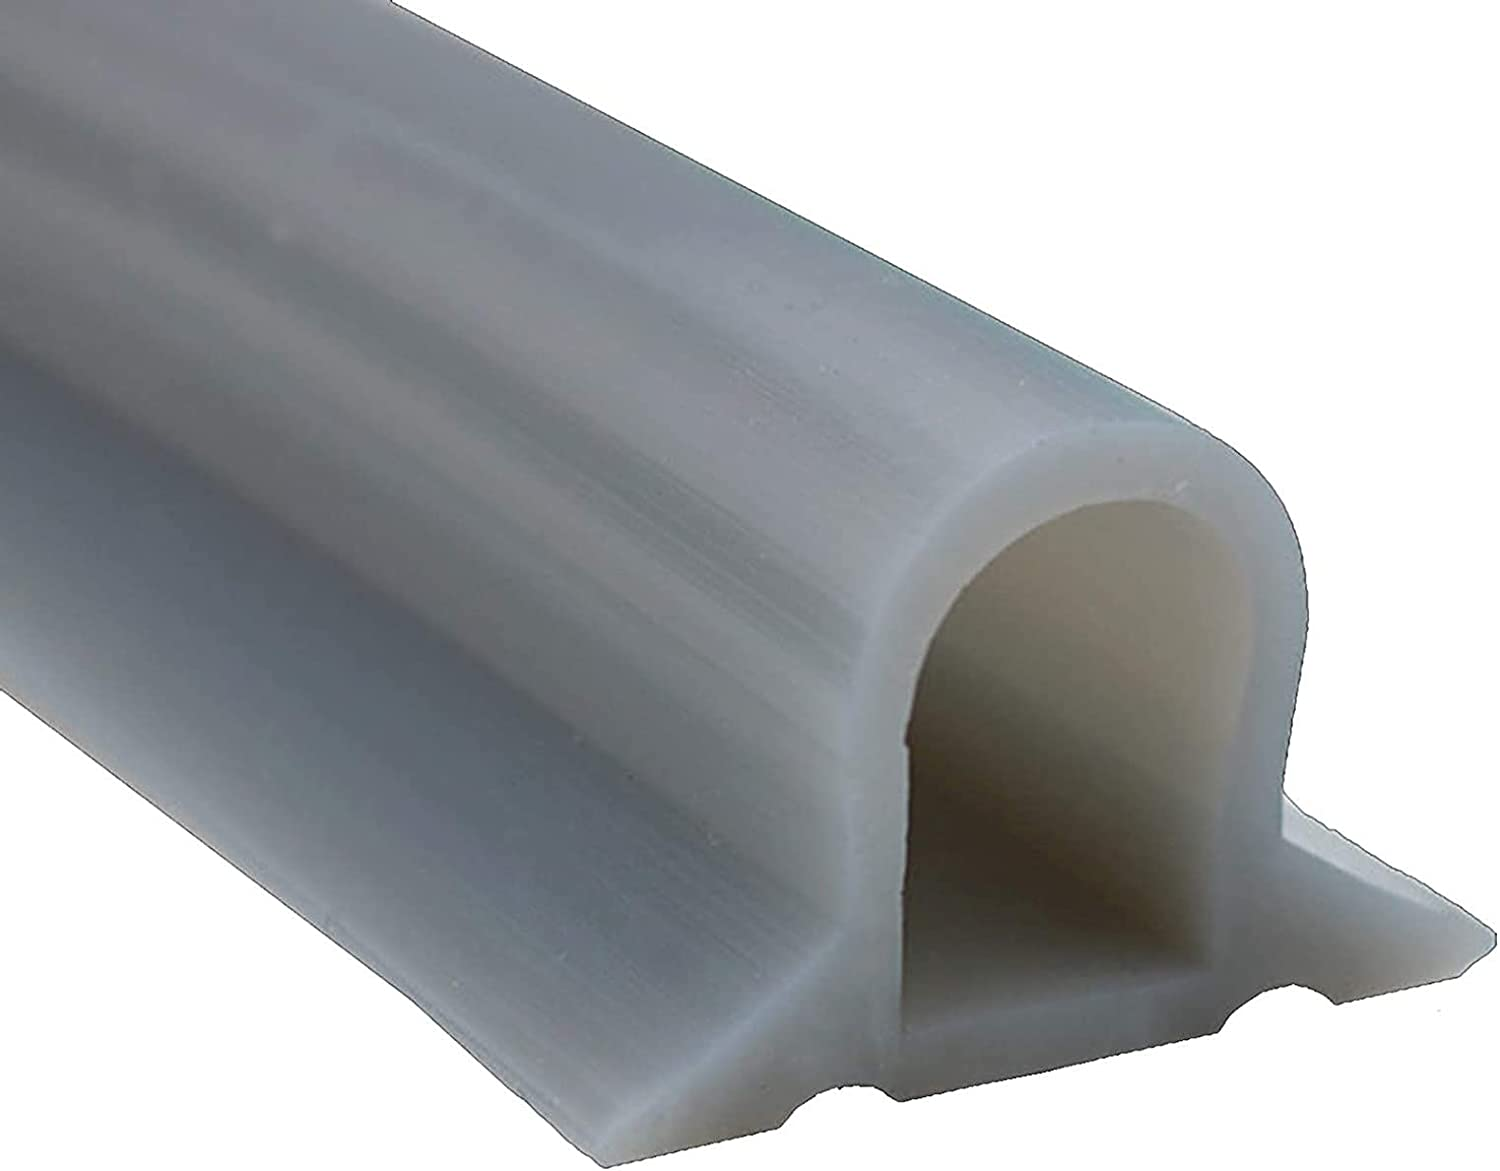 Inexpensive Threshold Water Dam Same day shipping Shower Barrier Wet Separatio Dry Silicon And